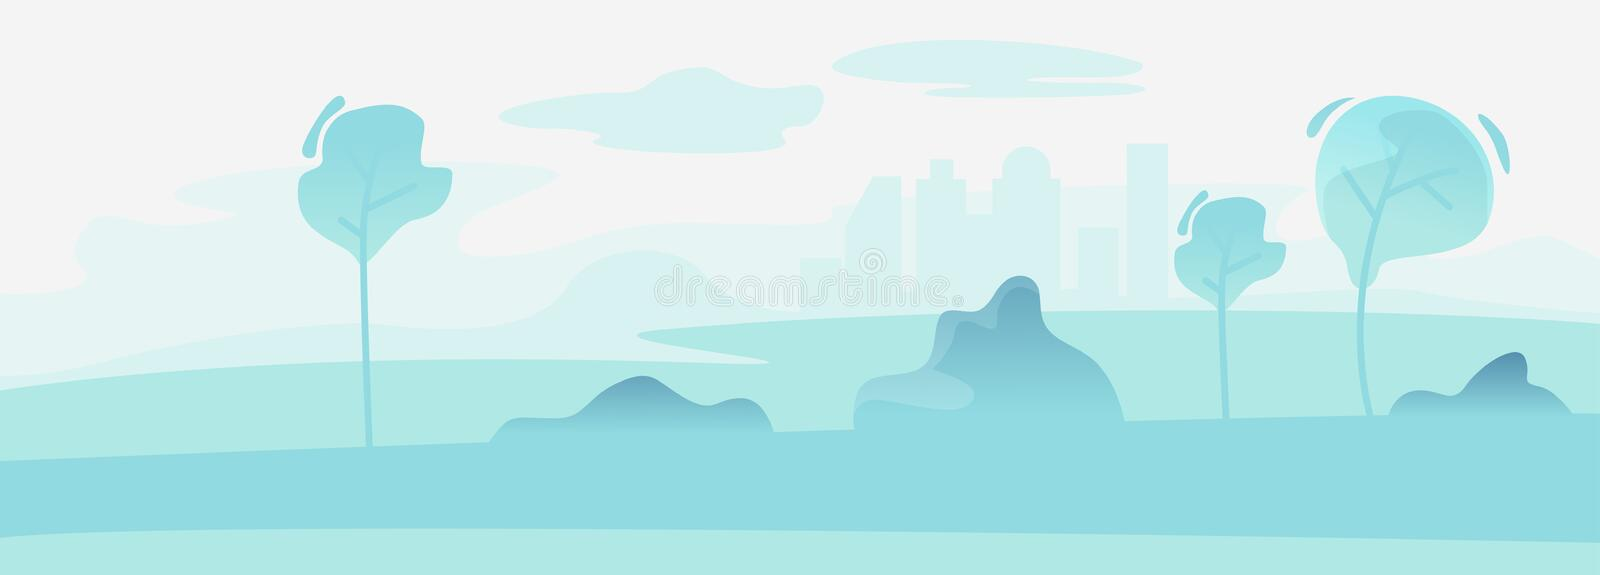 Urban Cityscape Park Landscape Background. Town Nature Tree Scene. City Outdoor Horizon Scenery Recreation. Spring vector illustration